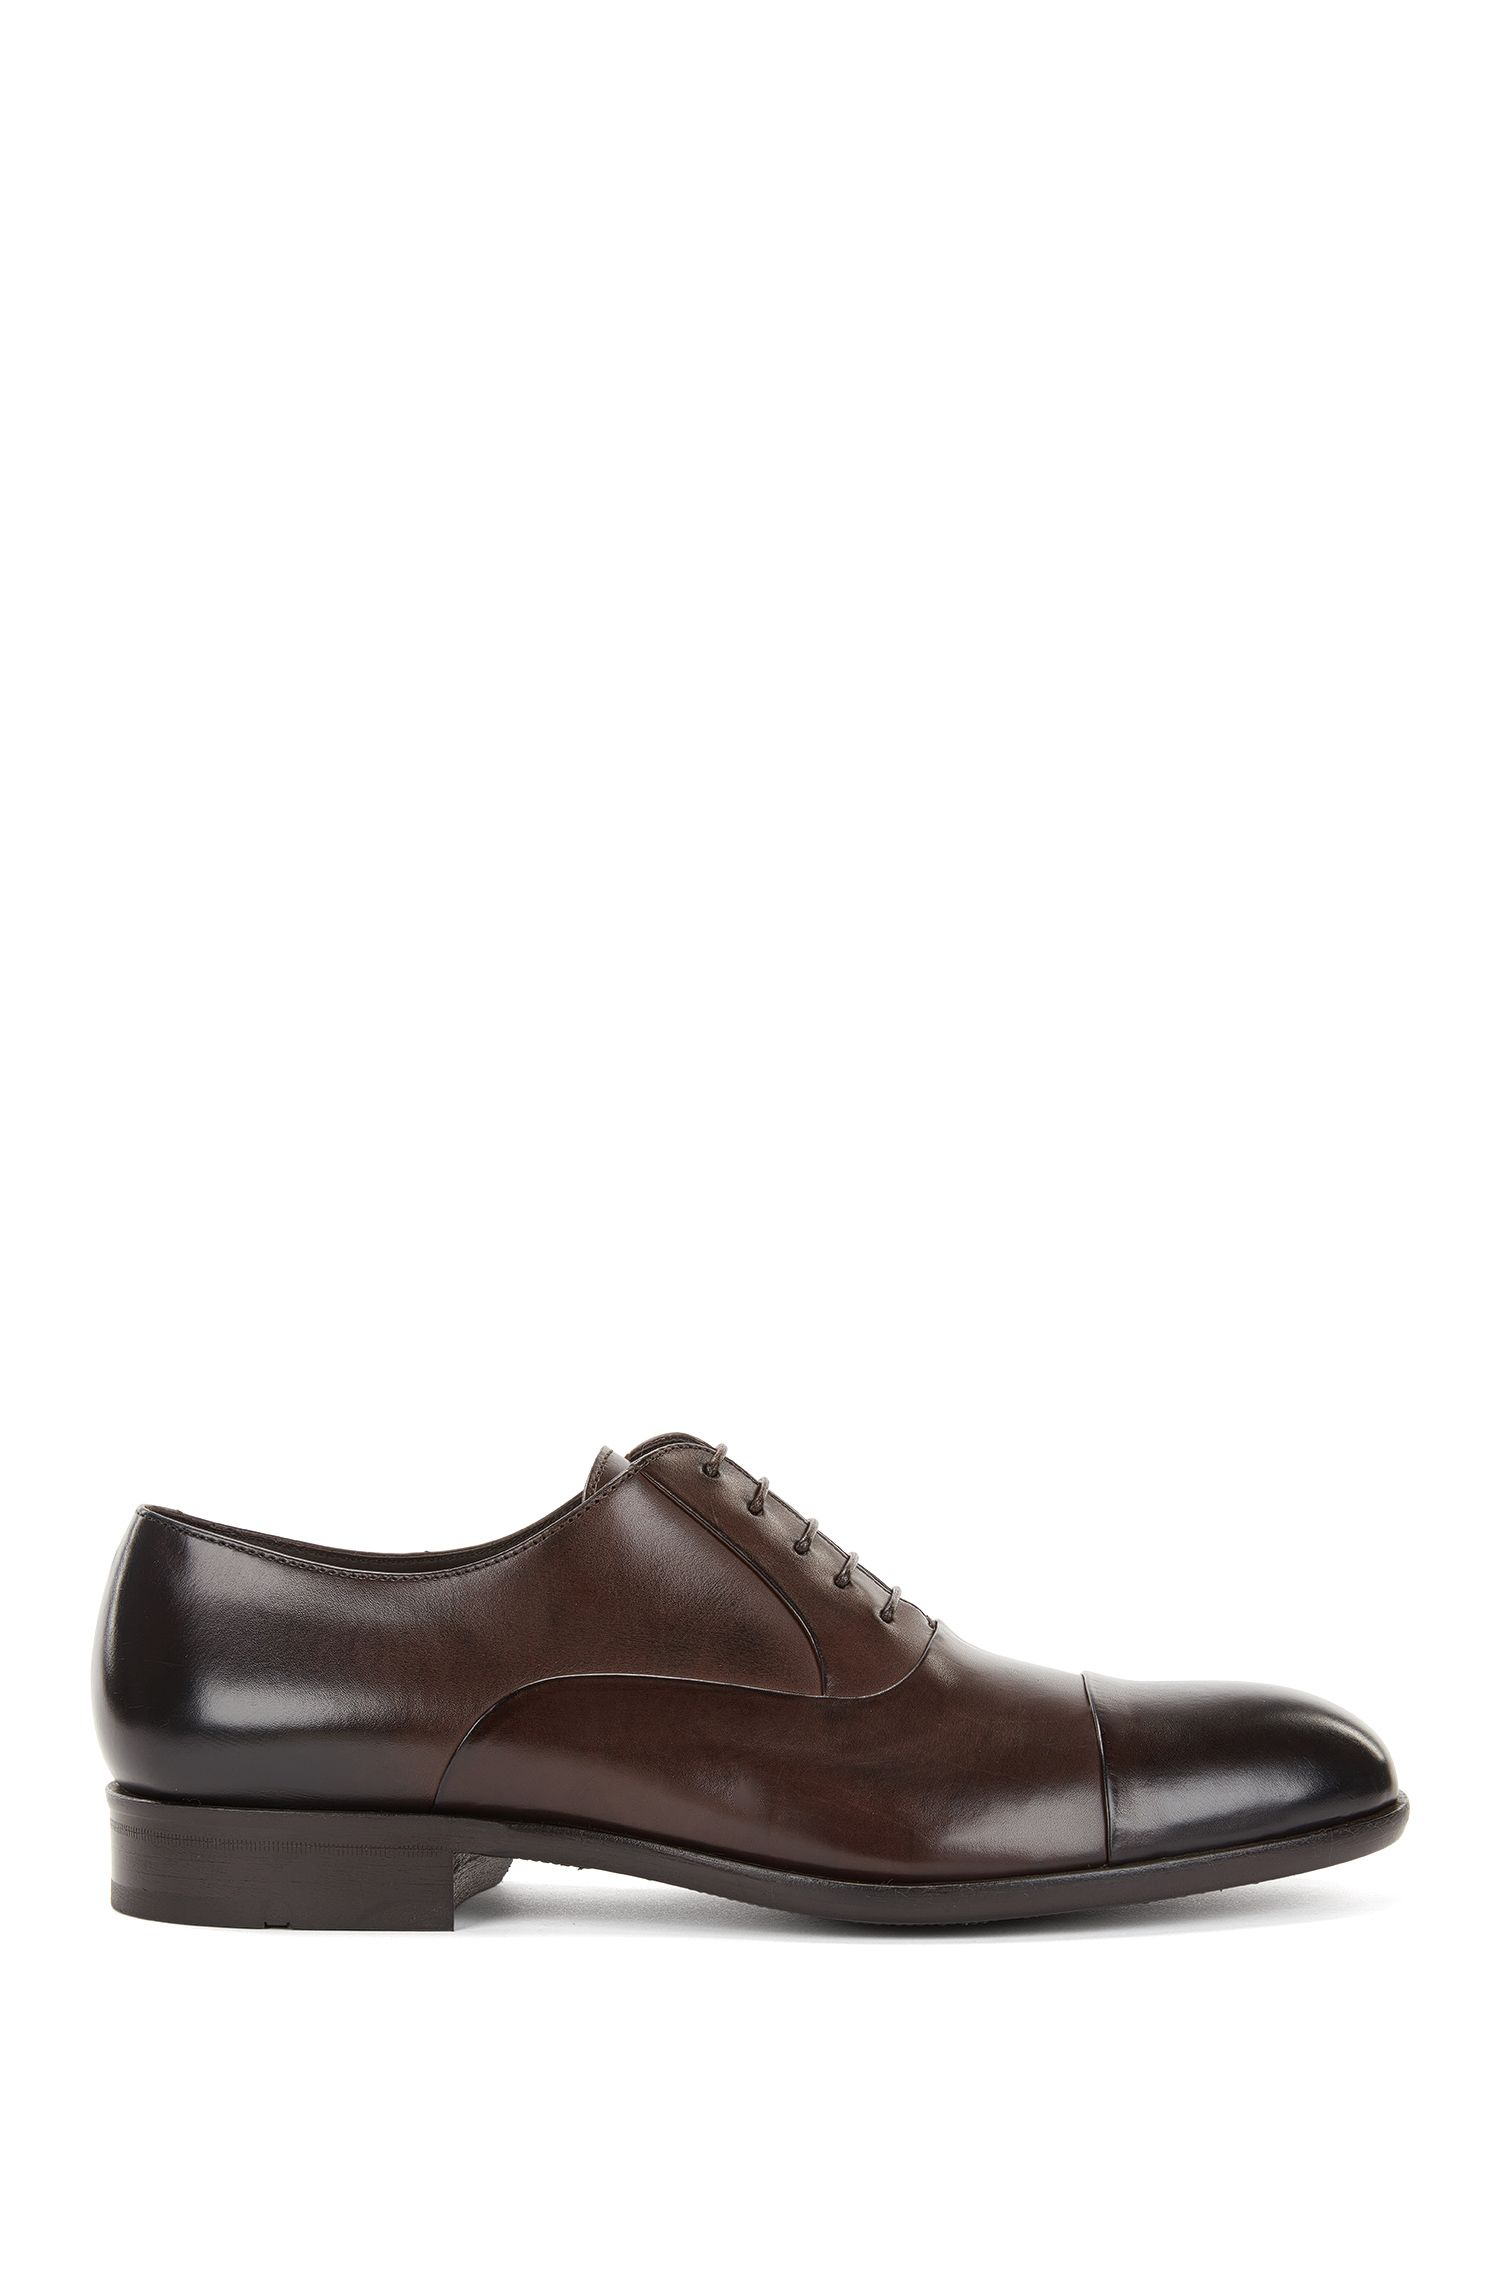 Lace-up Oxford shoes in polished leather